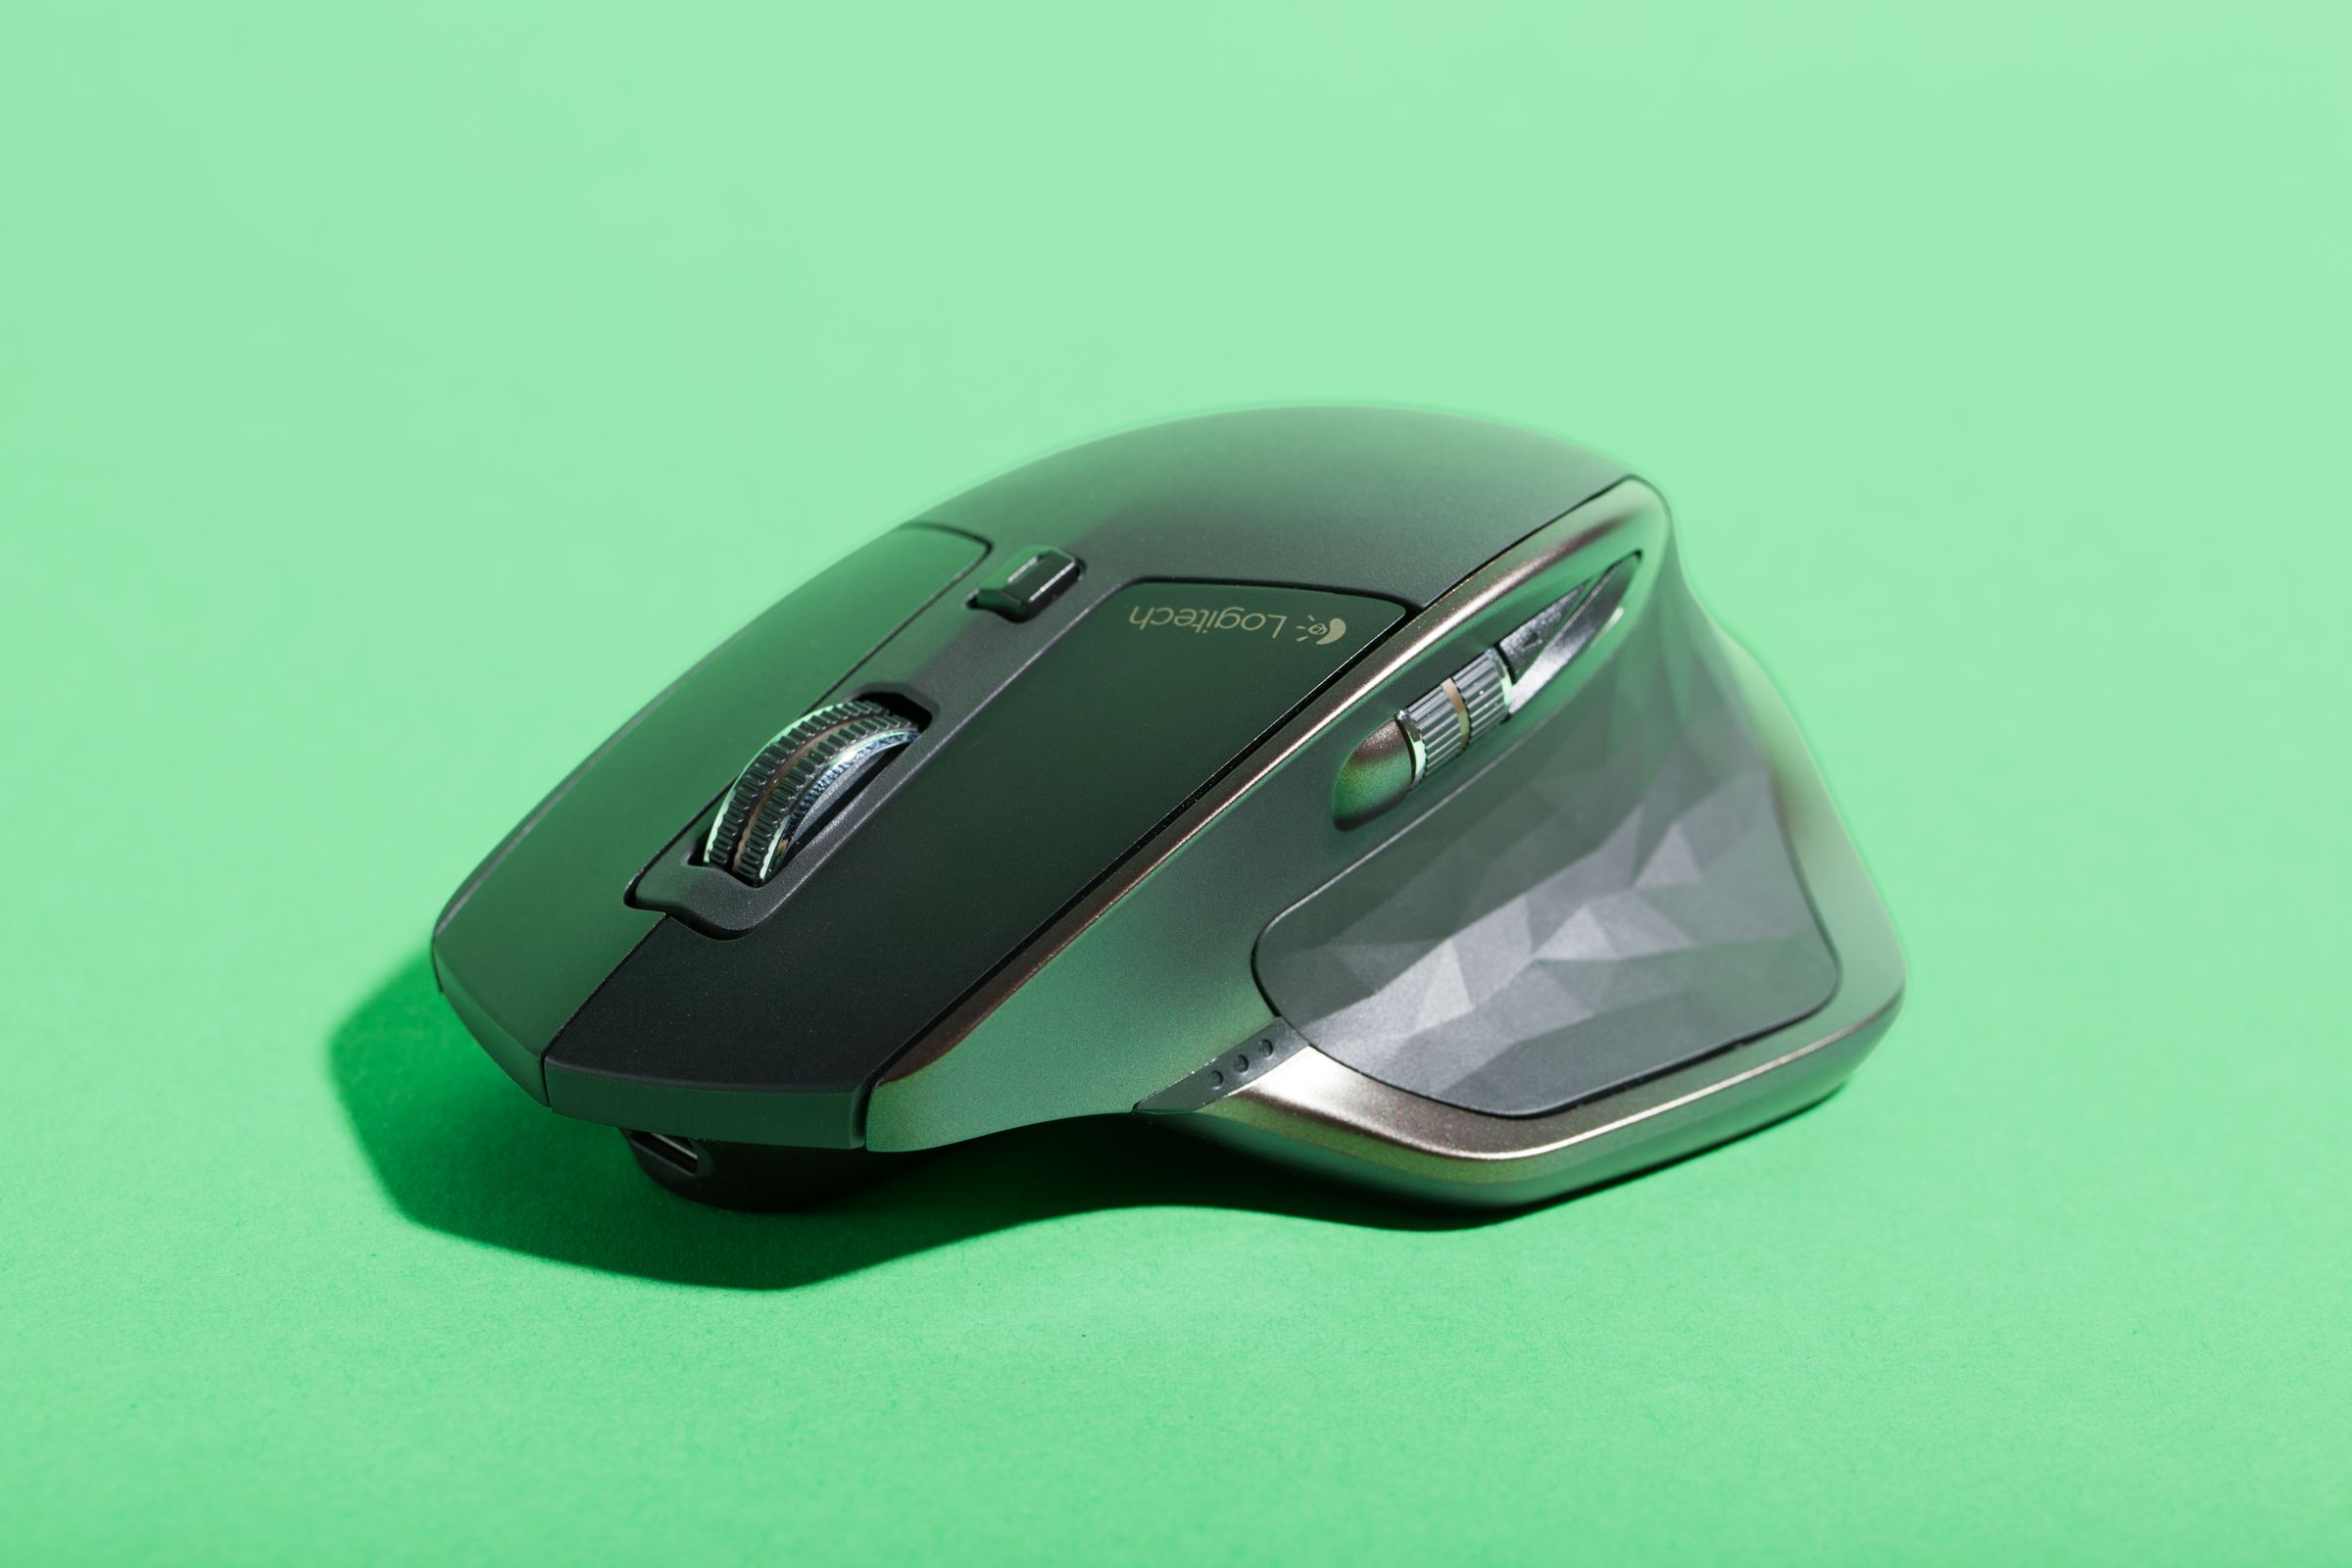 Logitech s New Wireless Mouse Is a Fistful of Awesome